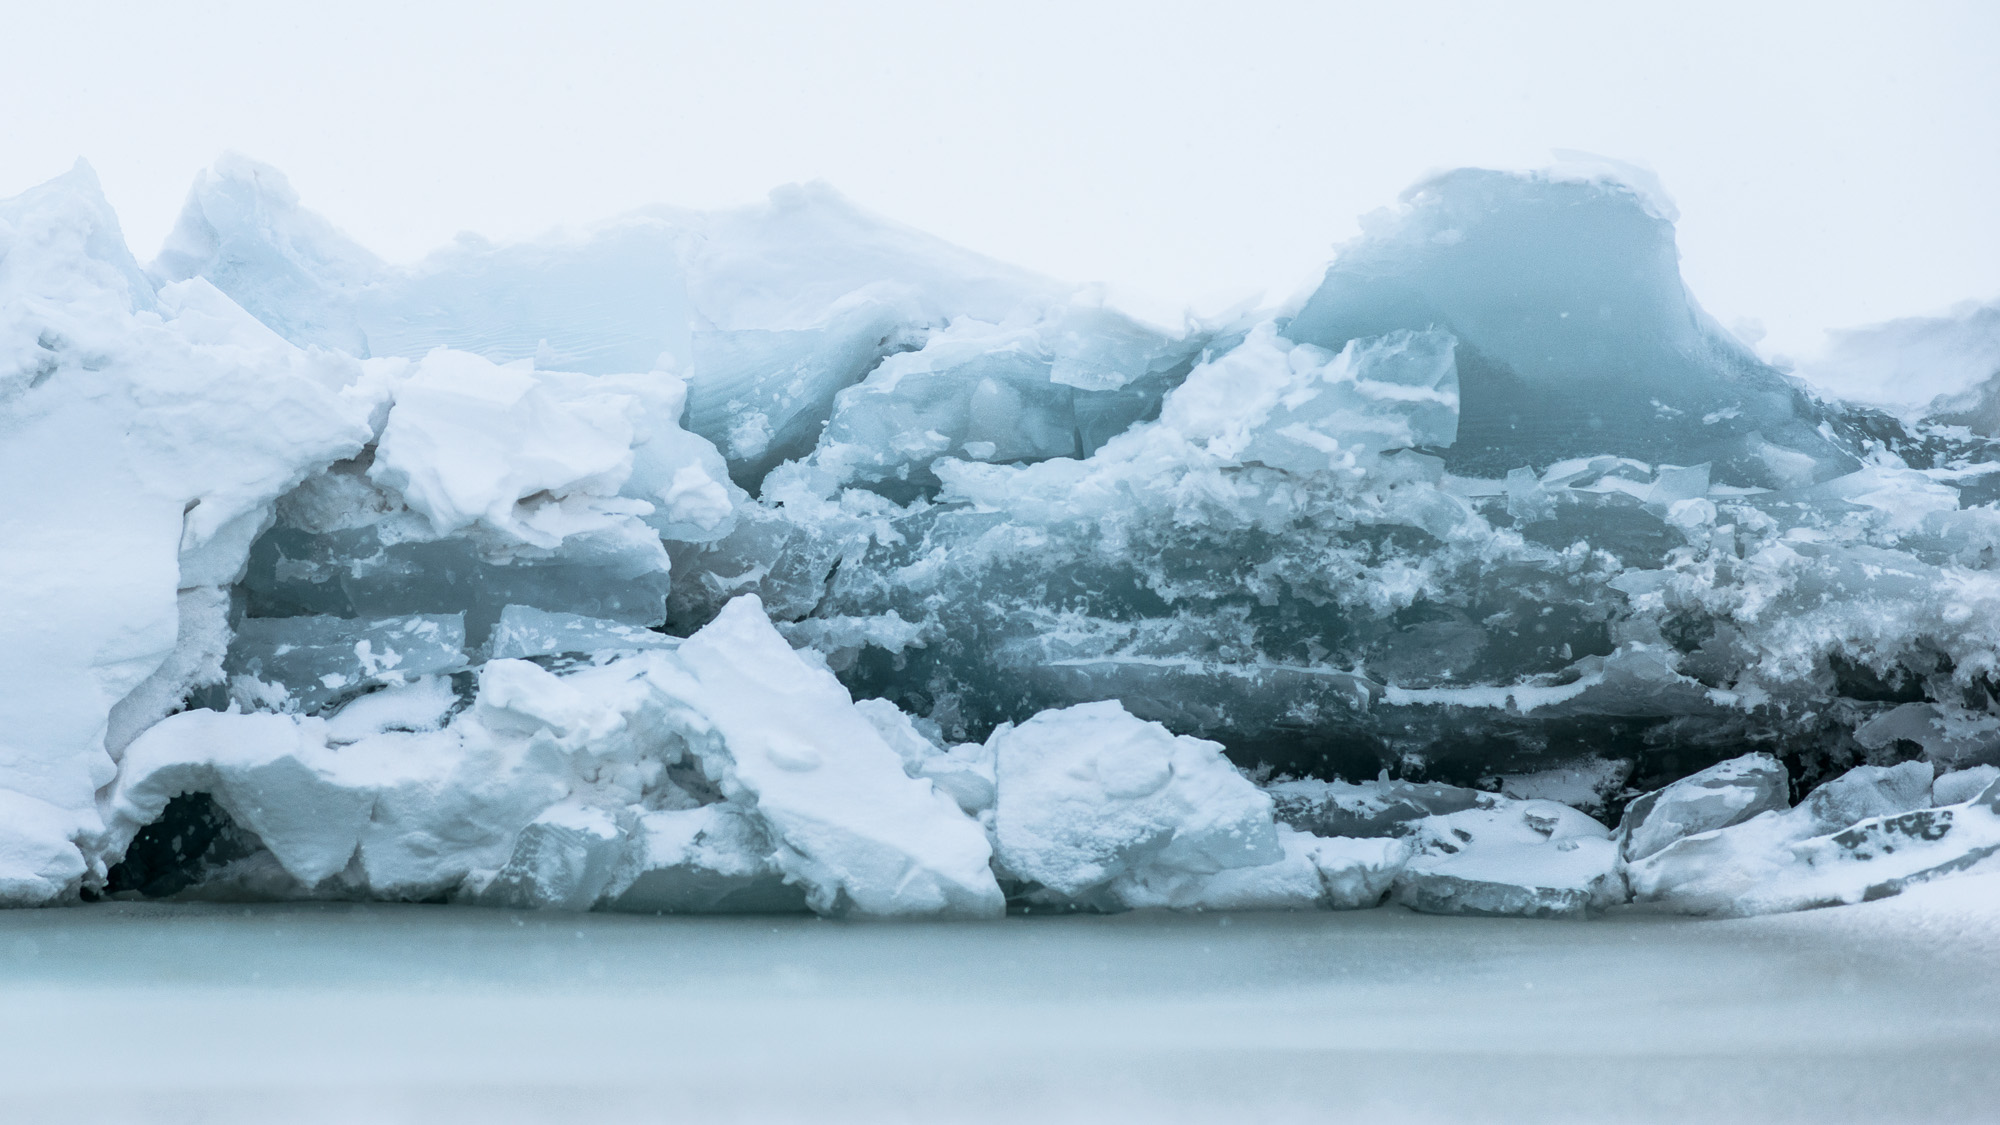 Gallery: Abstract Ice